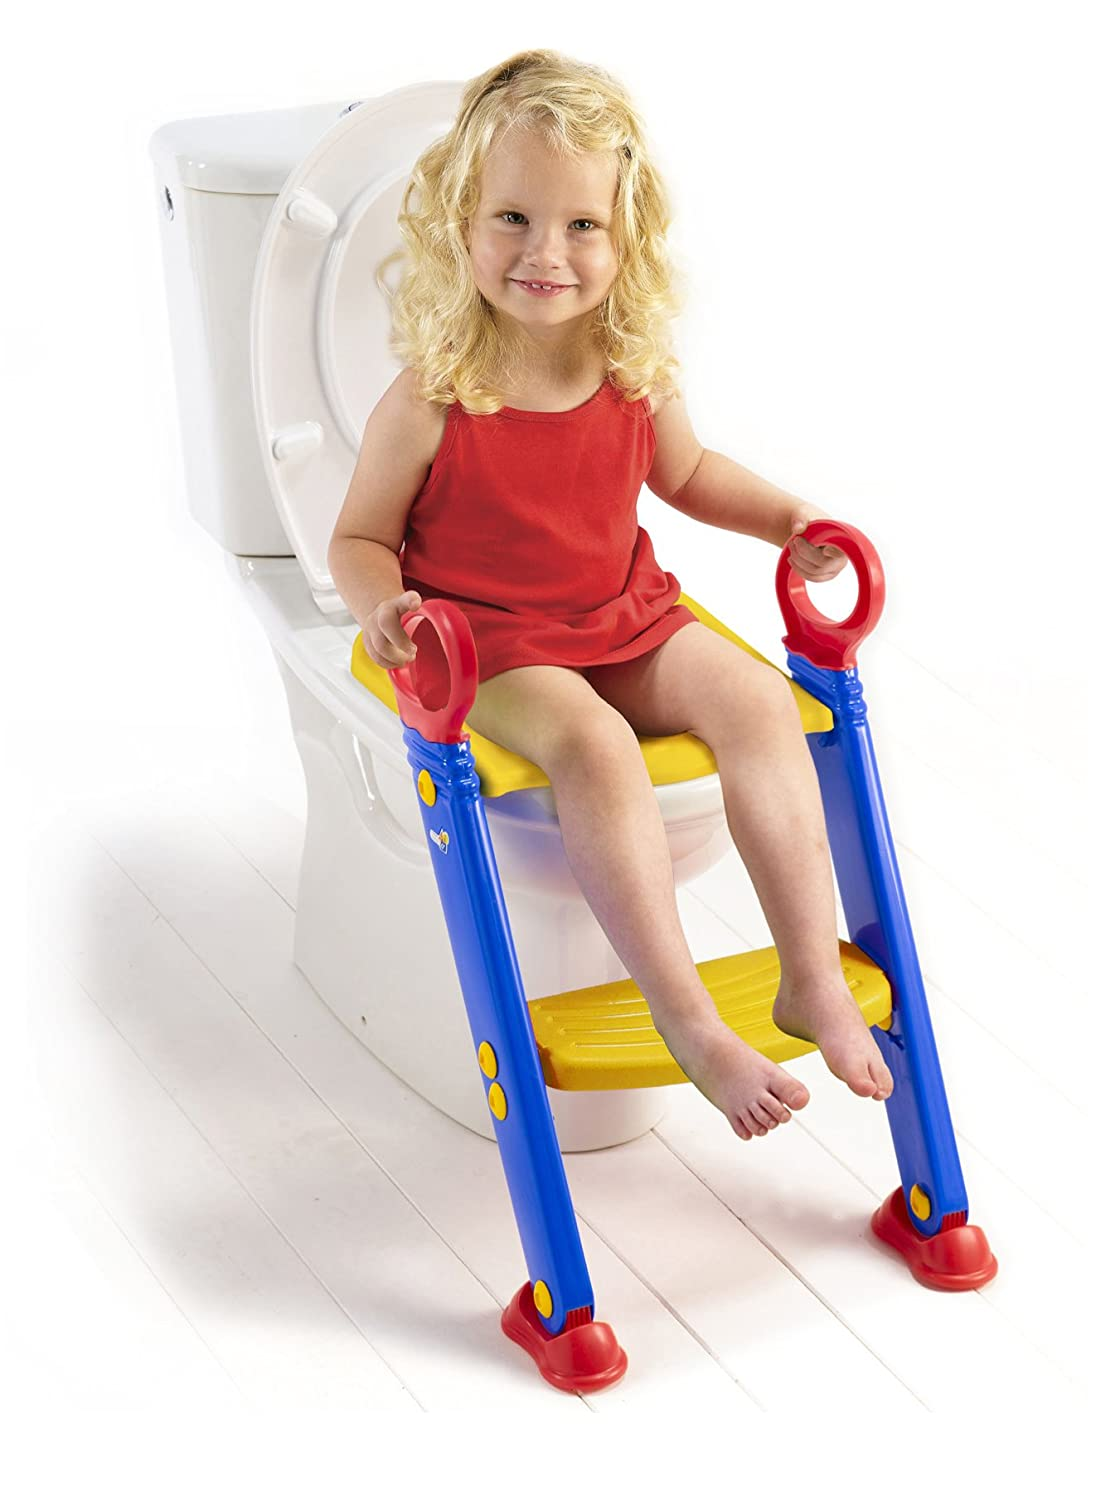 Amazon.com : Baby Keter Toilet Trainer : Toilet Training Seats : Baby